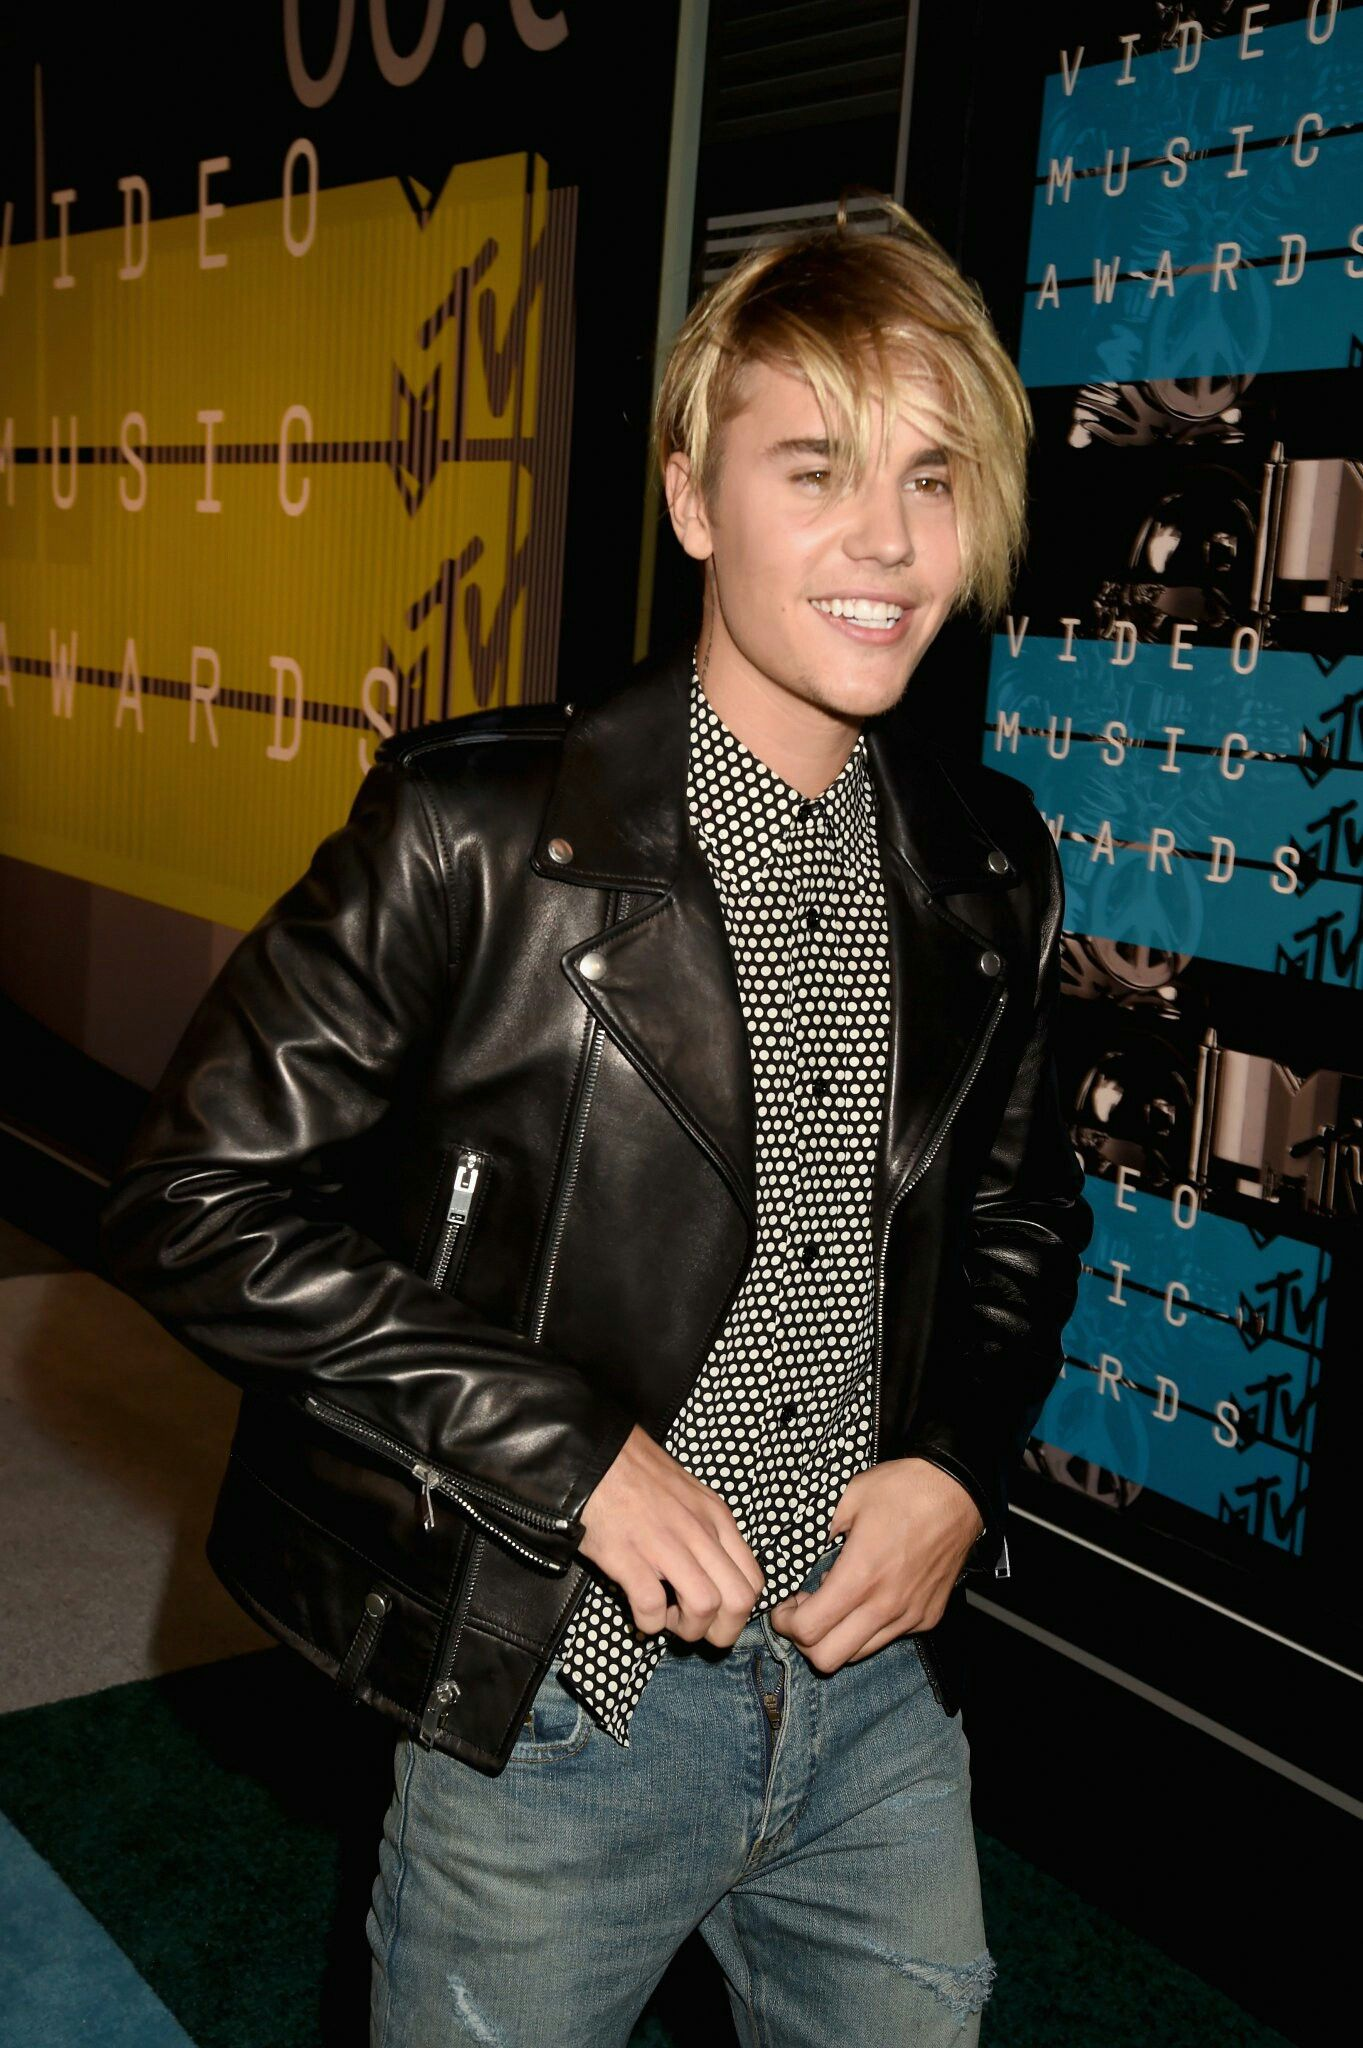 Pin By Justin Bieber On Appearnaces Awards Events Justin Bieber Family Justin Bieber Leather Jacket [ 2048 x 1363 Pixel ]